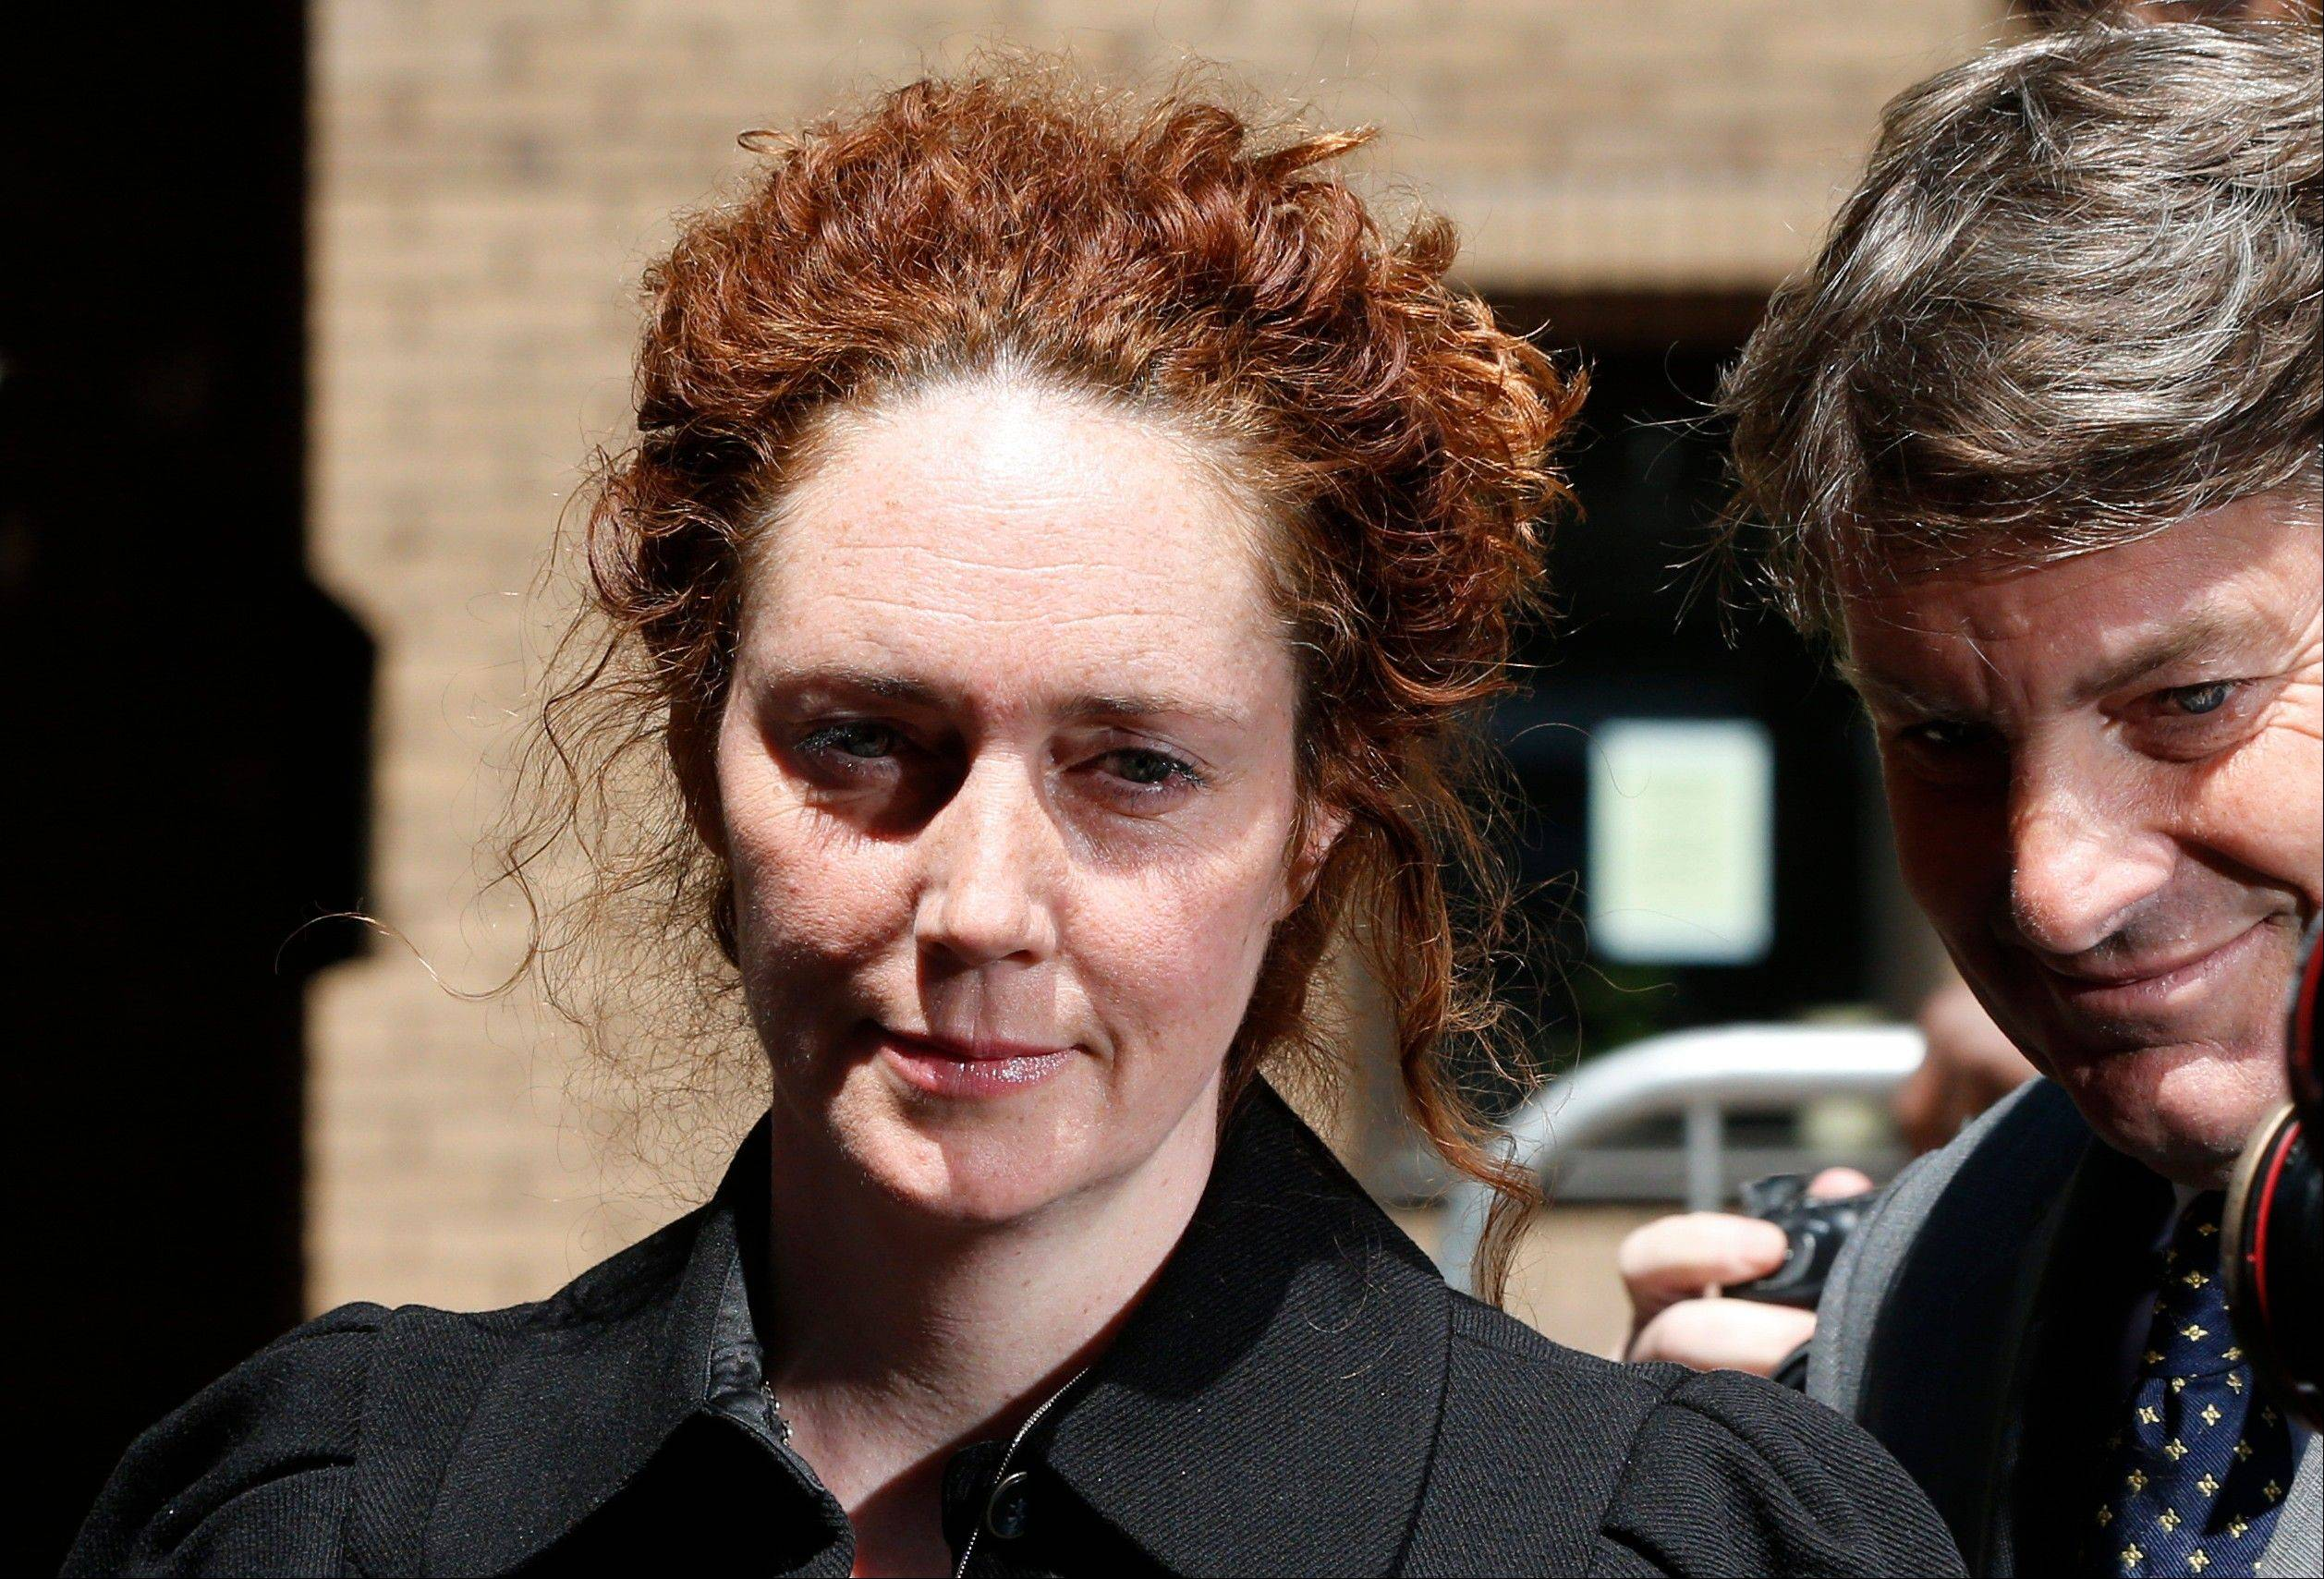 Former News International chief executive Rebekah Brooks, accompanied by her husband Charlie, right, leaves a court after entering a not guilty plea to charges related to phone hacking, in London, Wednesday, June 5, 2013. Brooks on Wednesday denied charges of phone hacking, bribing public officials and trying to thwart a police investigation into tabloid wrongdoing.